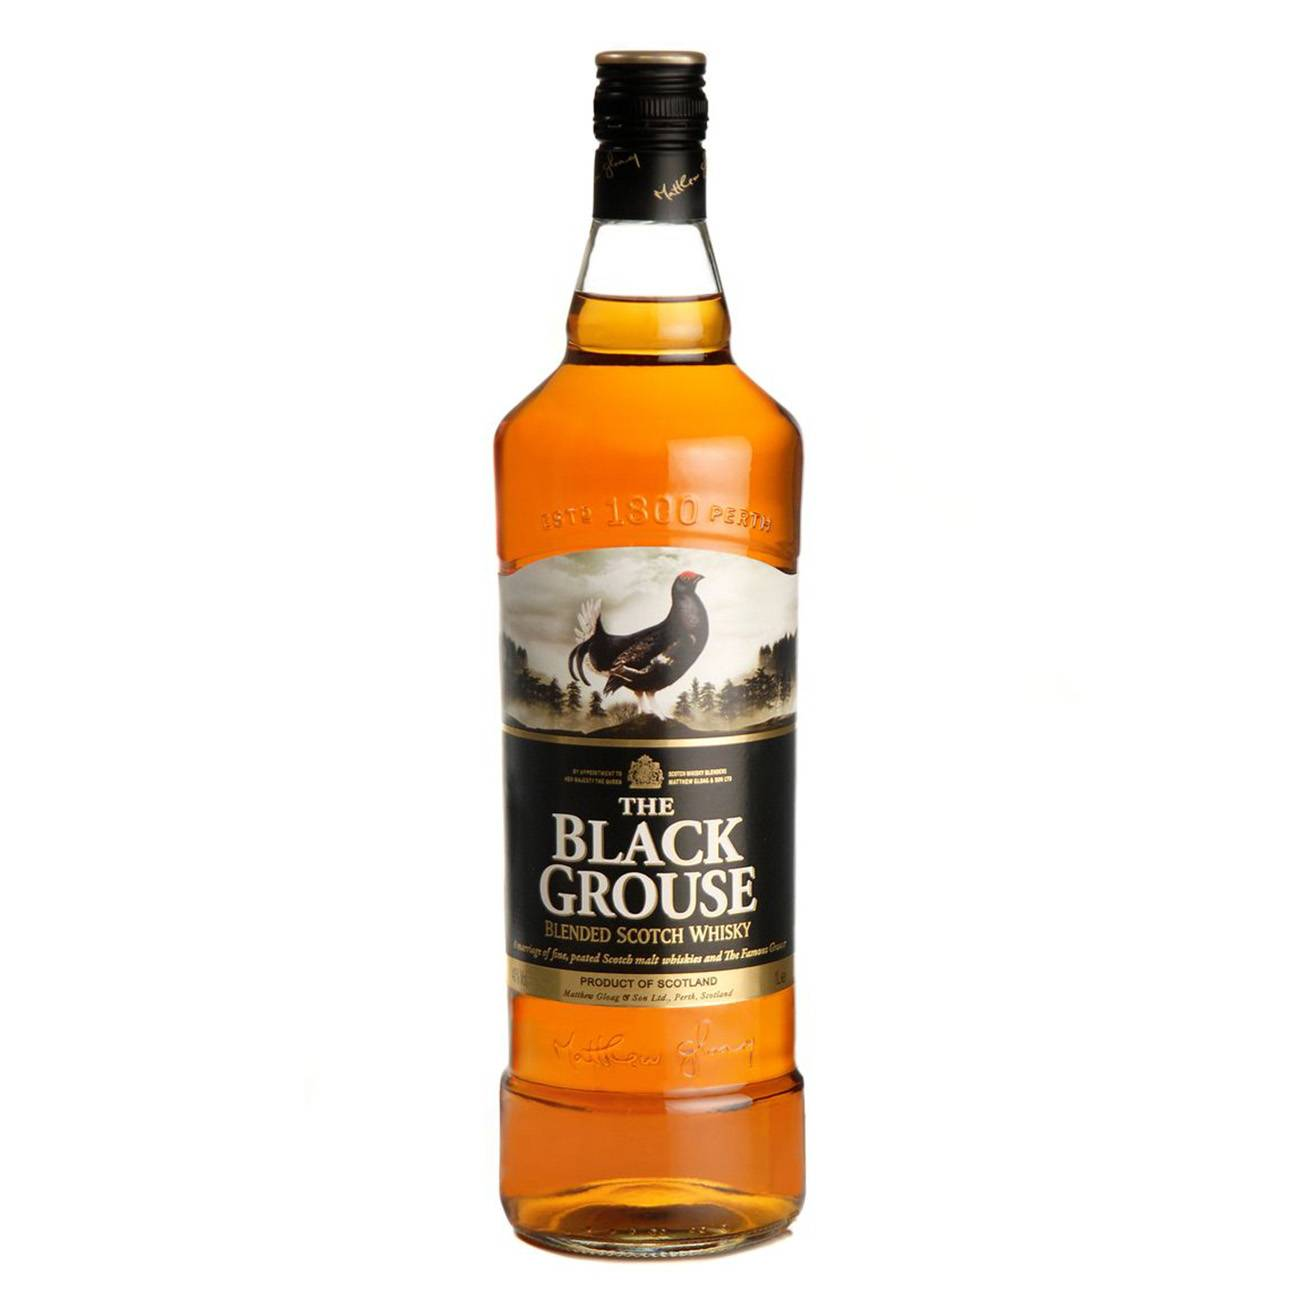 THE BLACK GROUSE 1000 ML